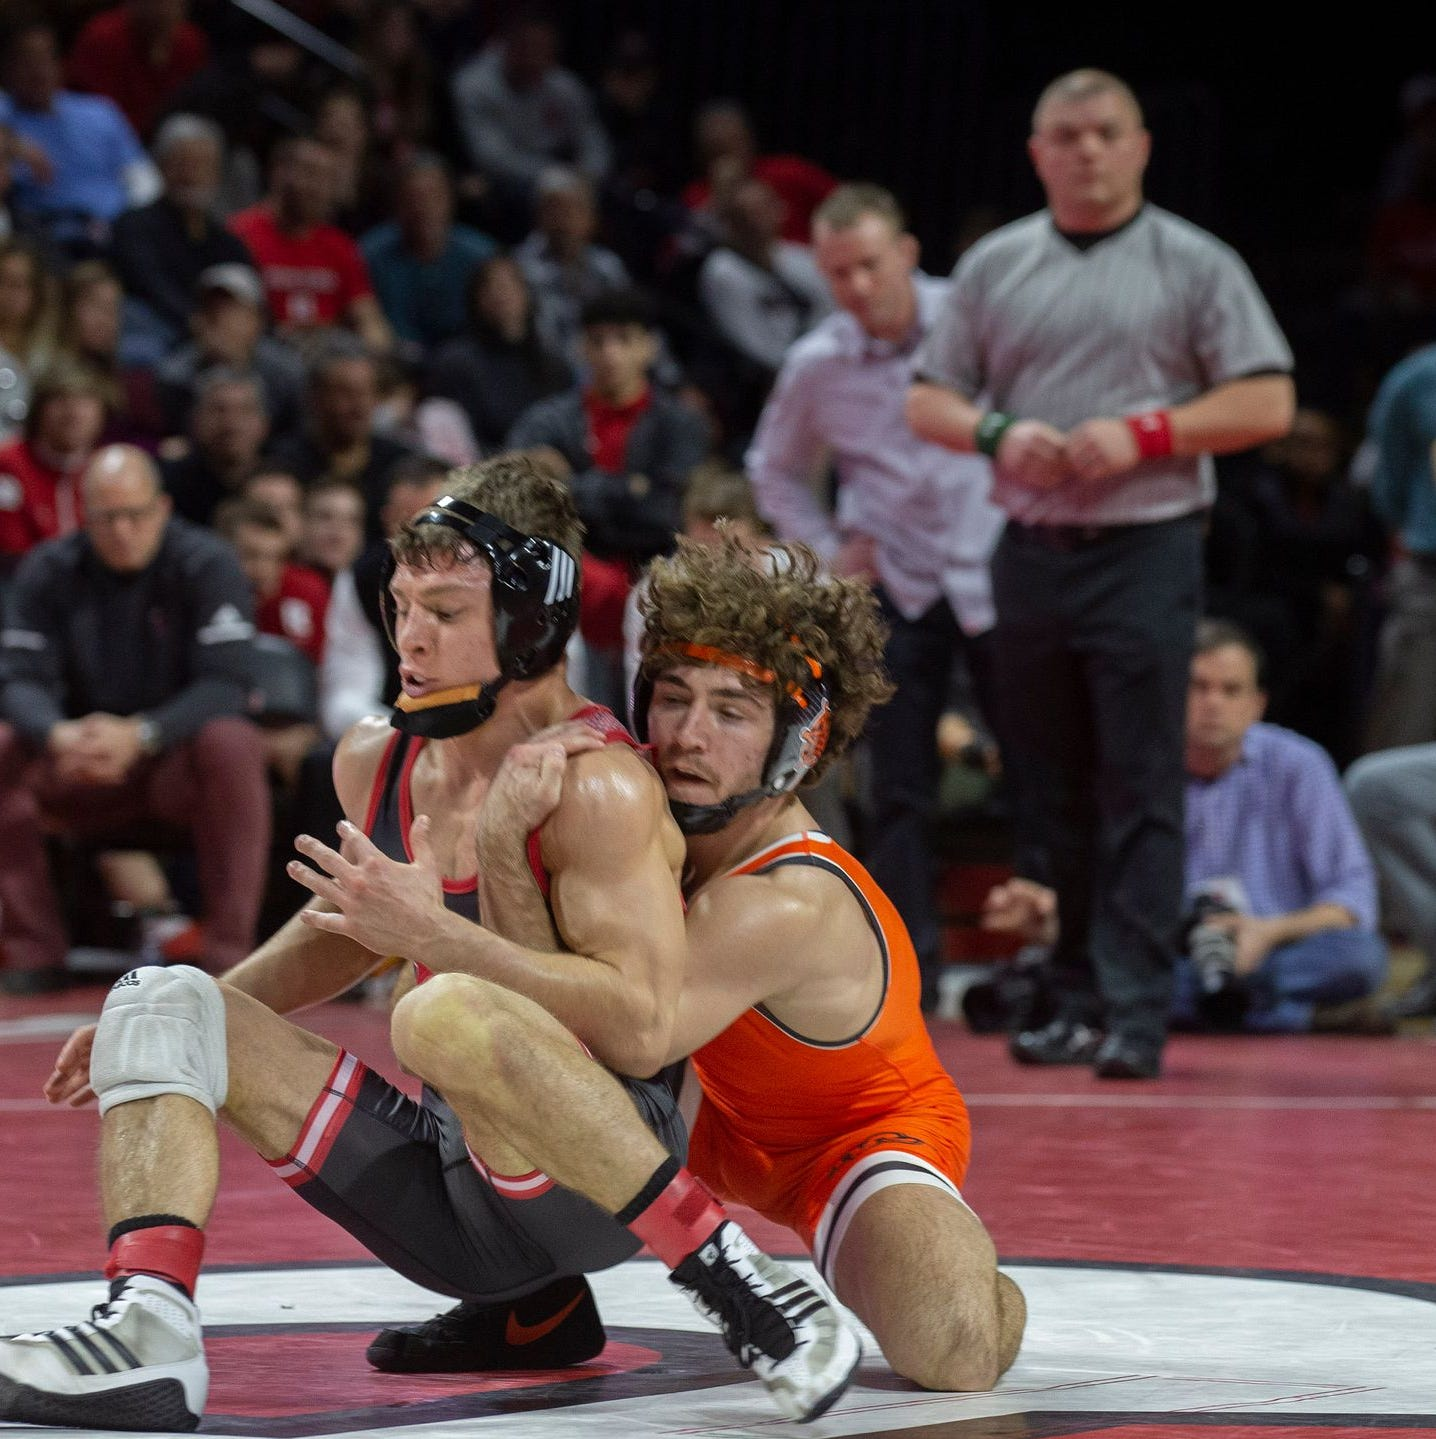 College wrestling: Nick Suriano suffers second straight loss